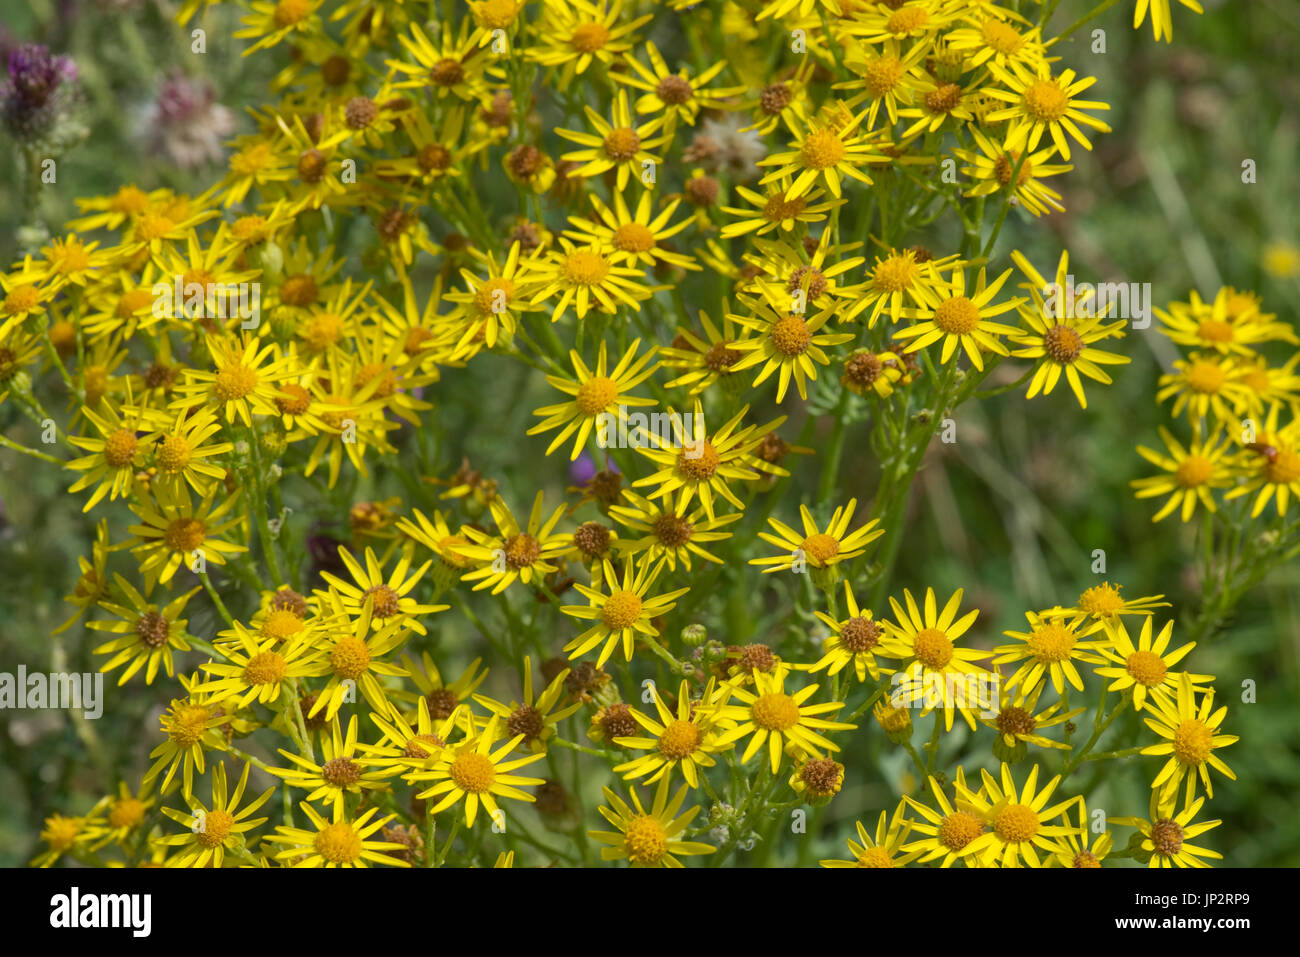 Ragwort Jacobaea Vulgaris Yellow Star Shaped Flowers With Ray And